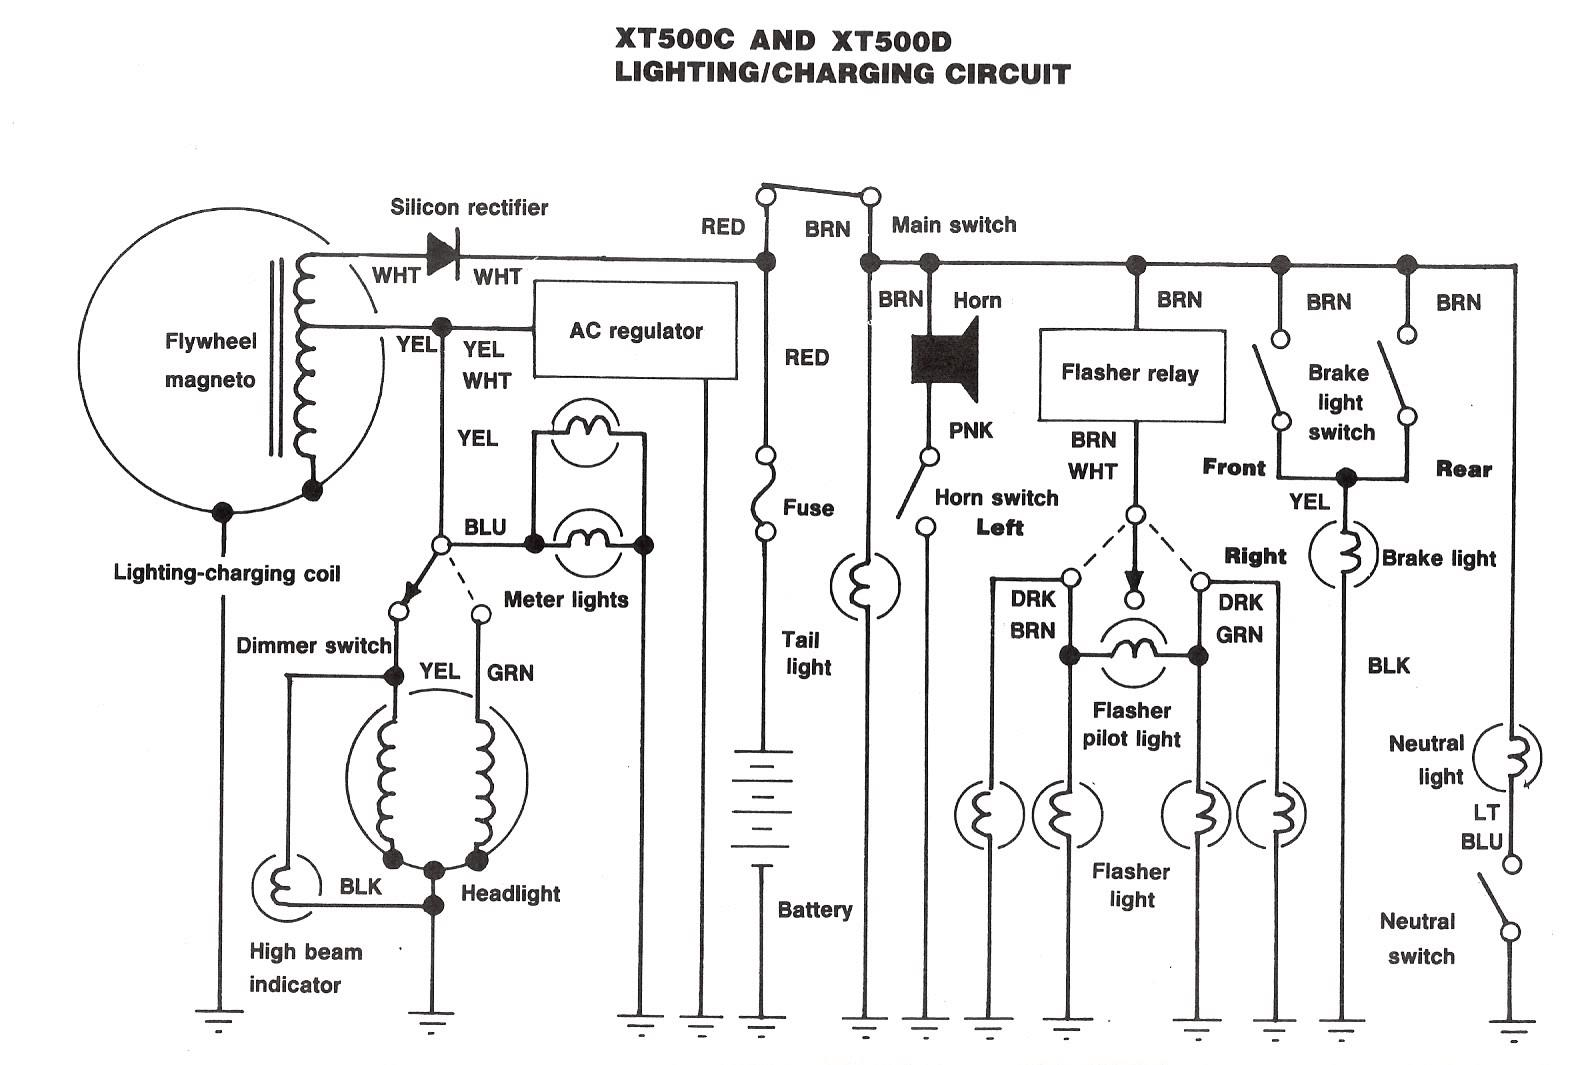 Xt500 Electrical2 Yamaha Drive Wiring Diagram The Us For 1980 And 1981